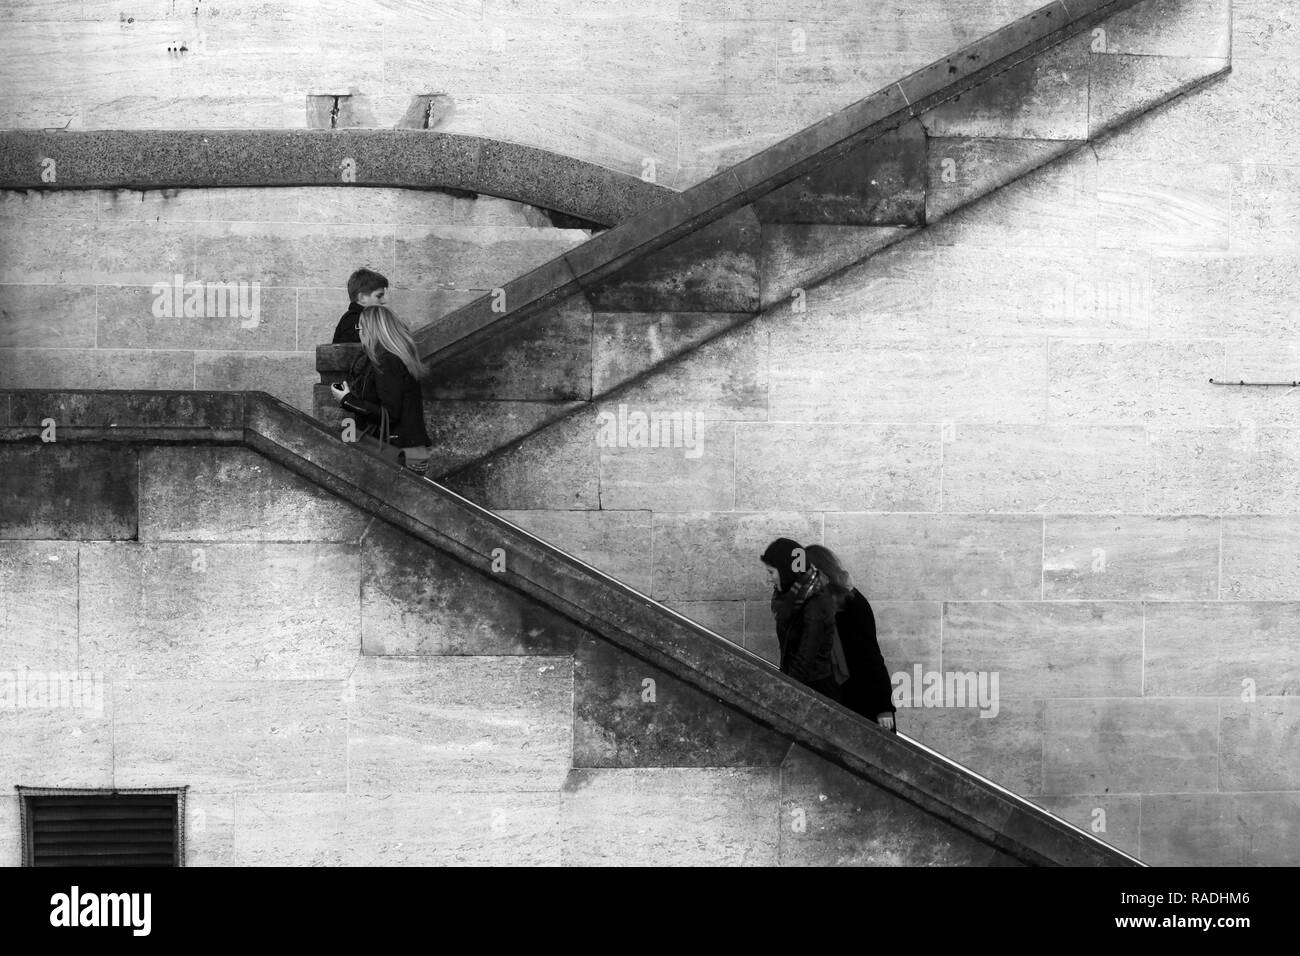 London/England - March 07 2015: People walking up an aging flight of stairs by Waterloo Bridge Southbank London - Stock Image